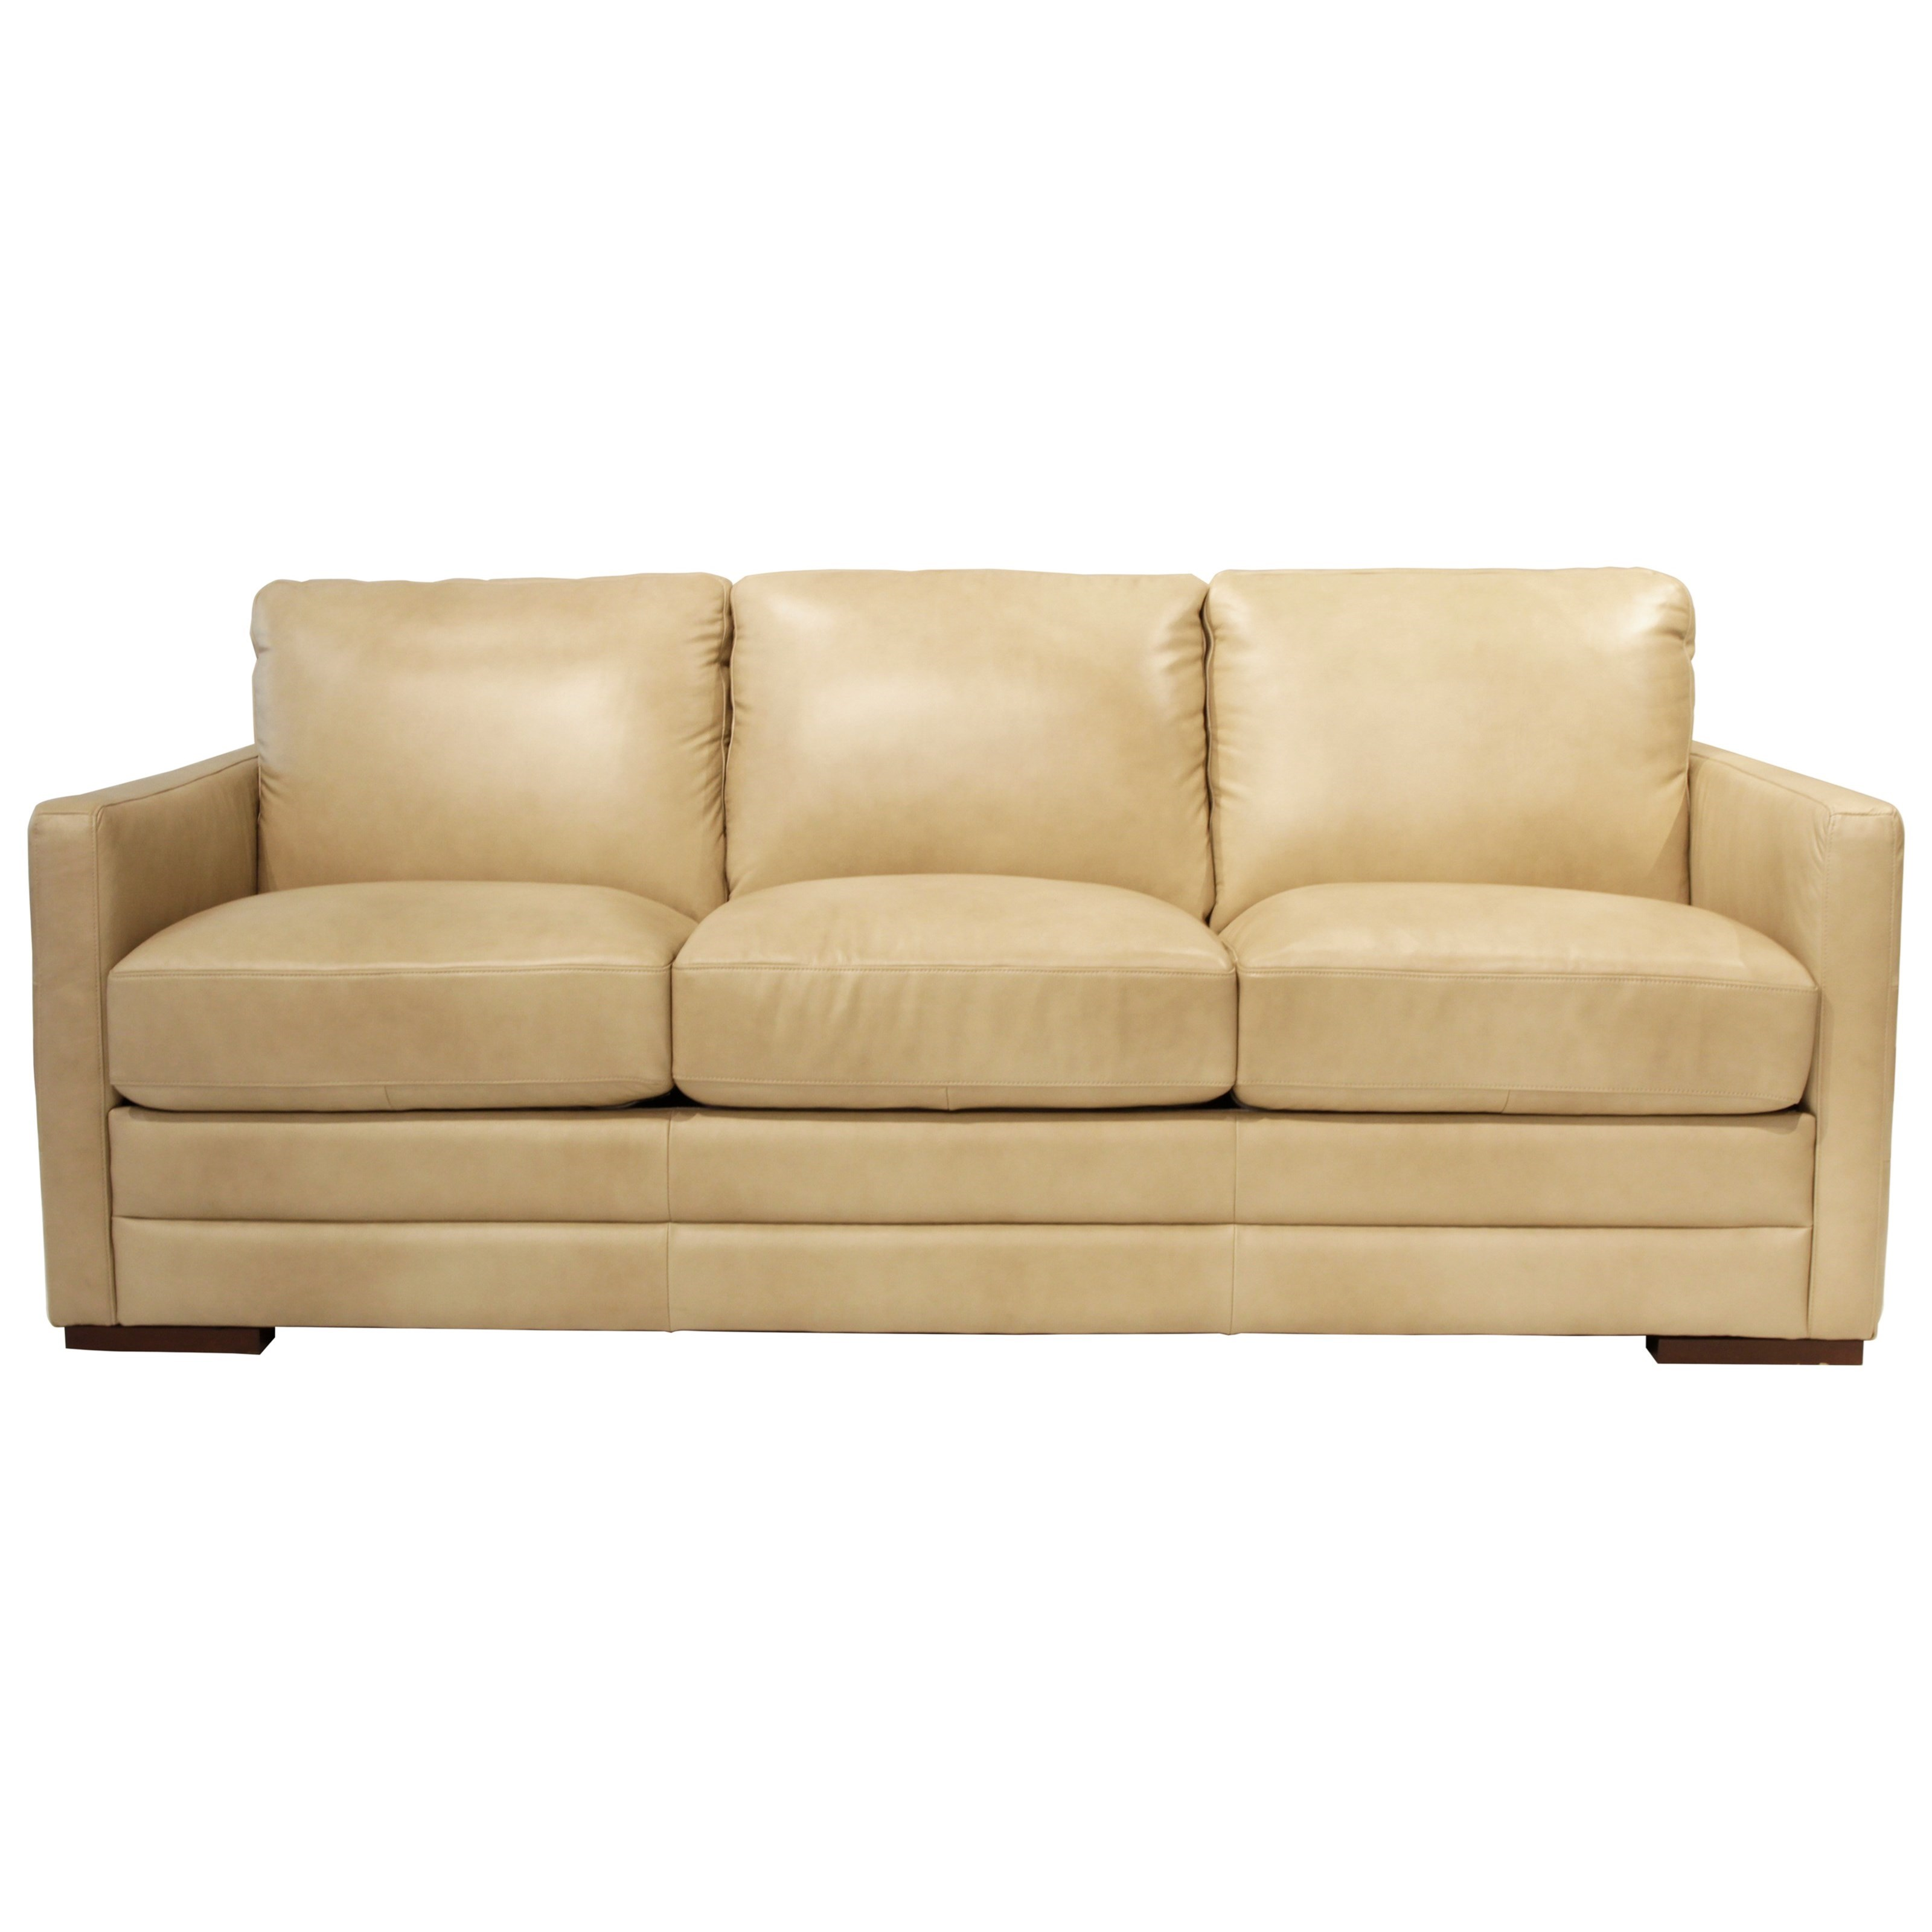 Monica Queen Sofabed by Futura Leather at HomeWorld Furniture